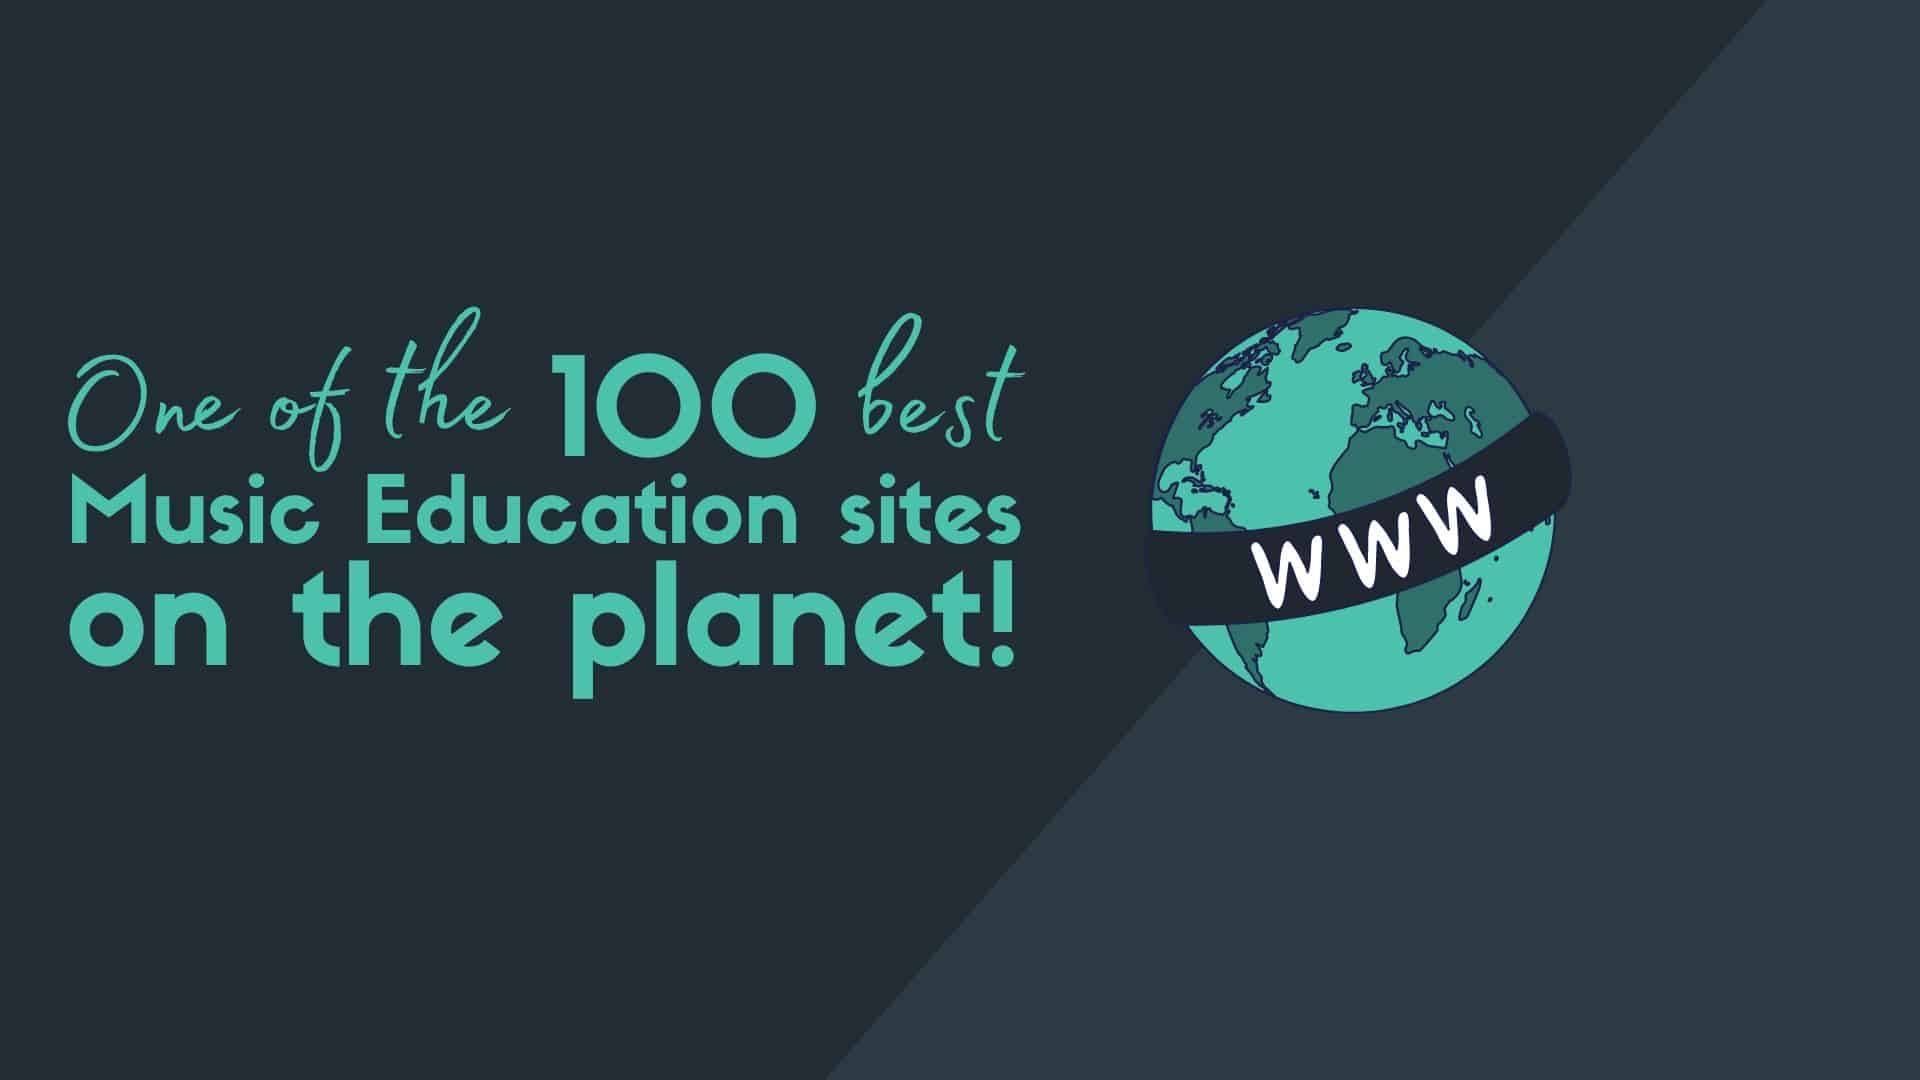 Duett is One of the 100 Best Music Education Sites on the Planet! - Beyond Music blog post headers